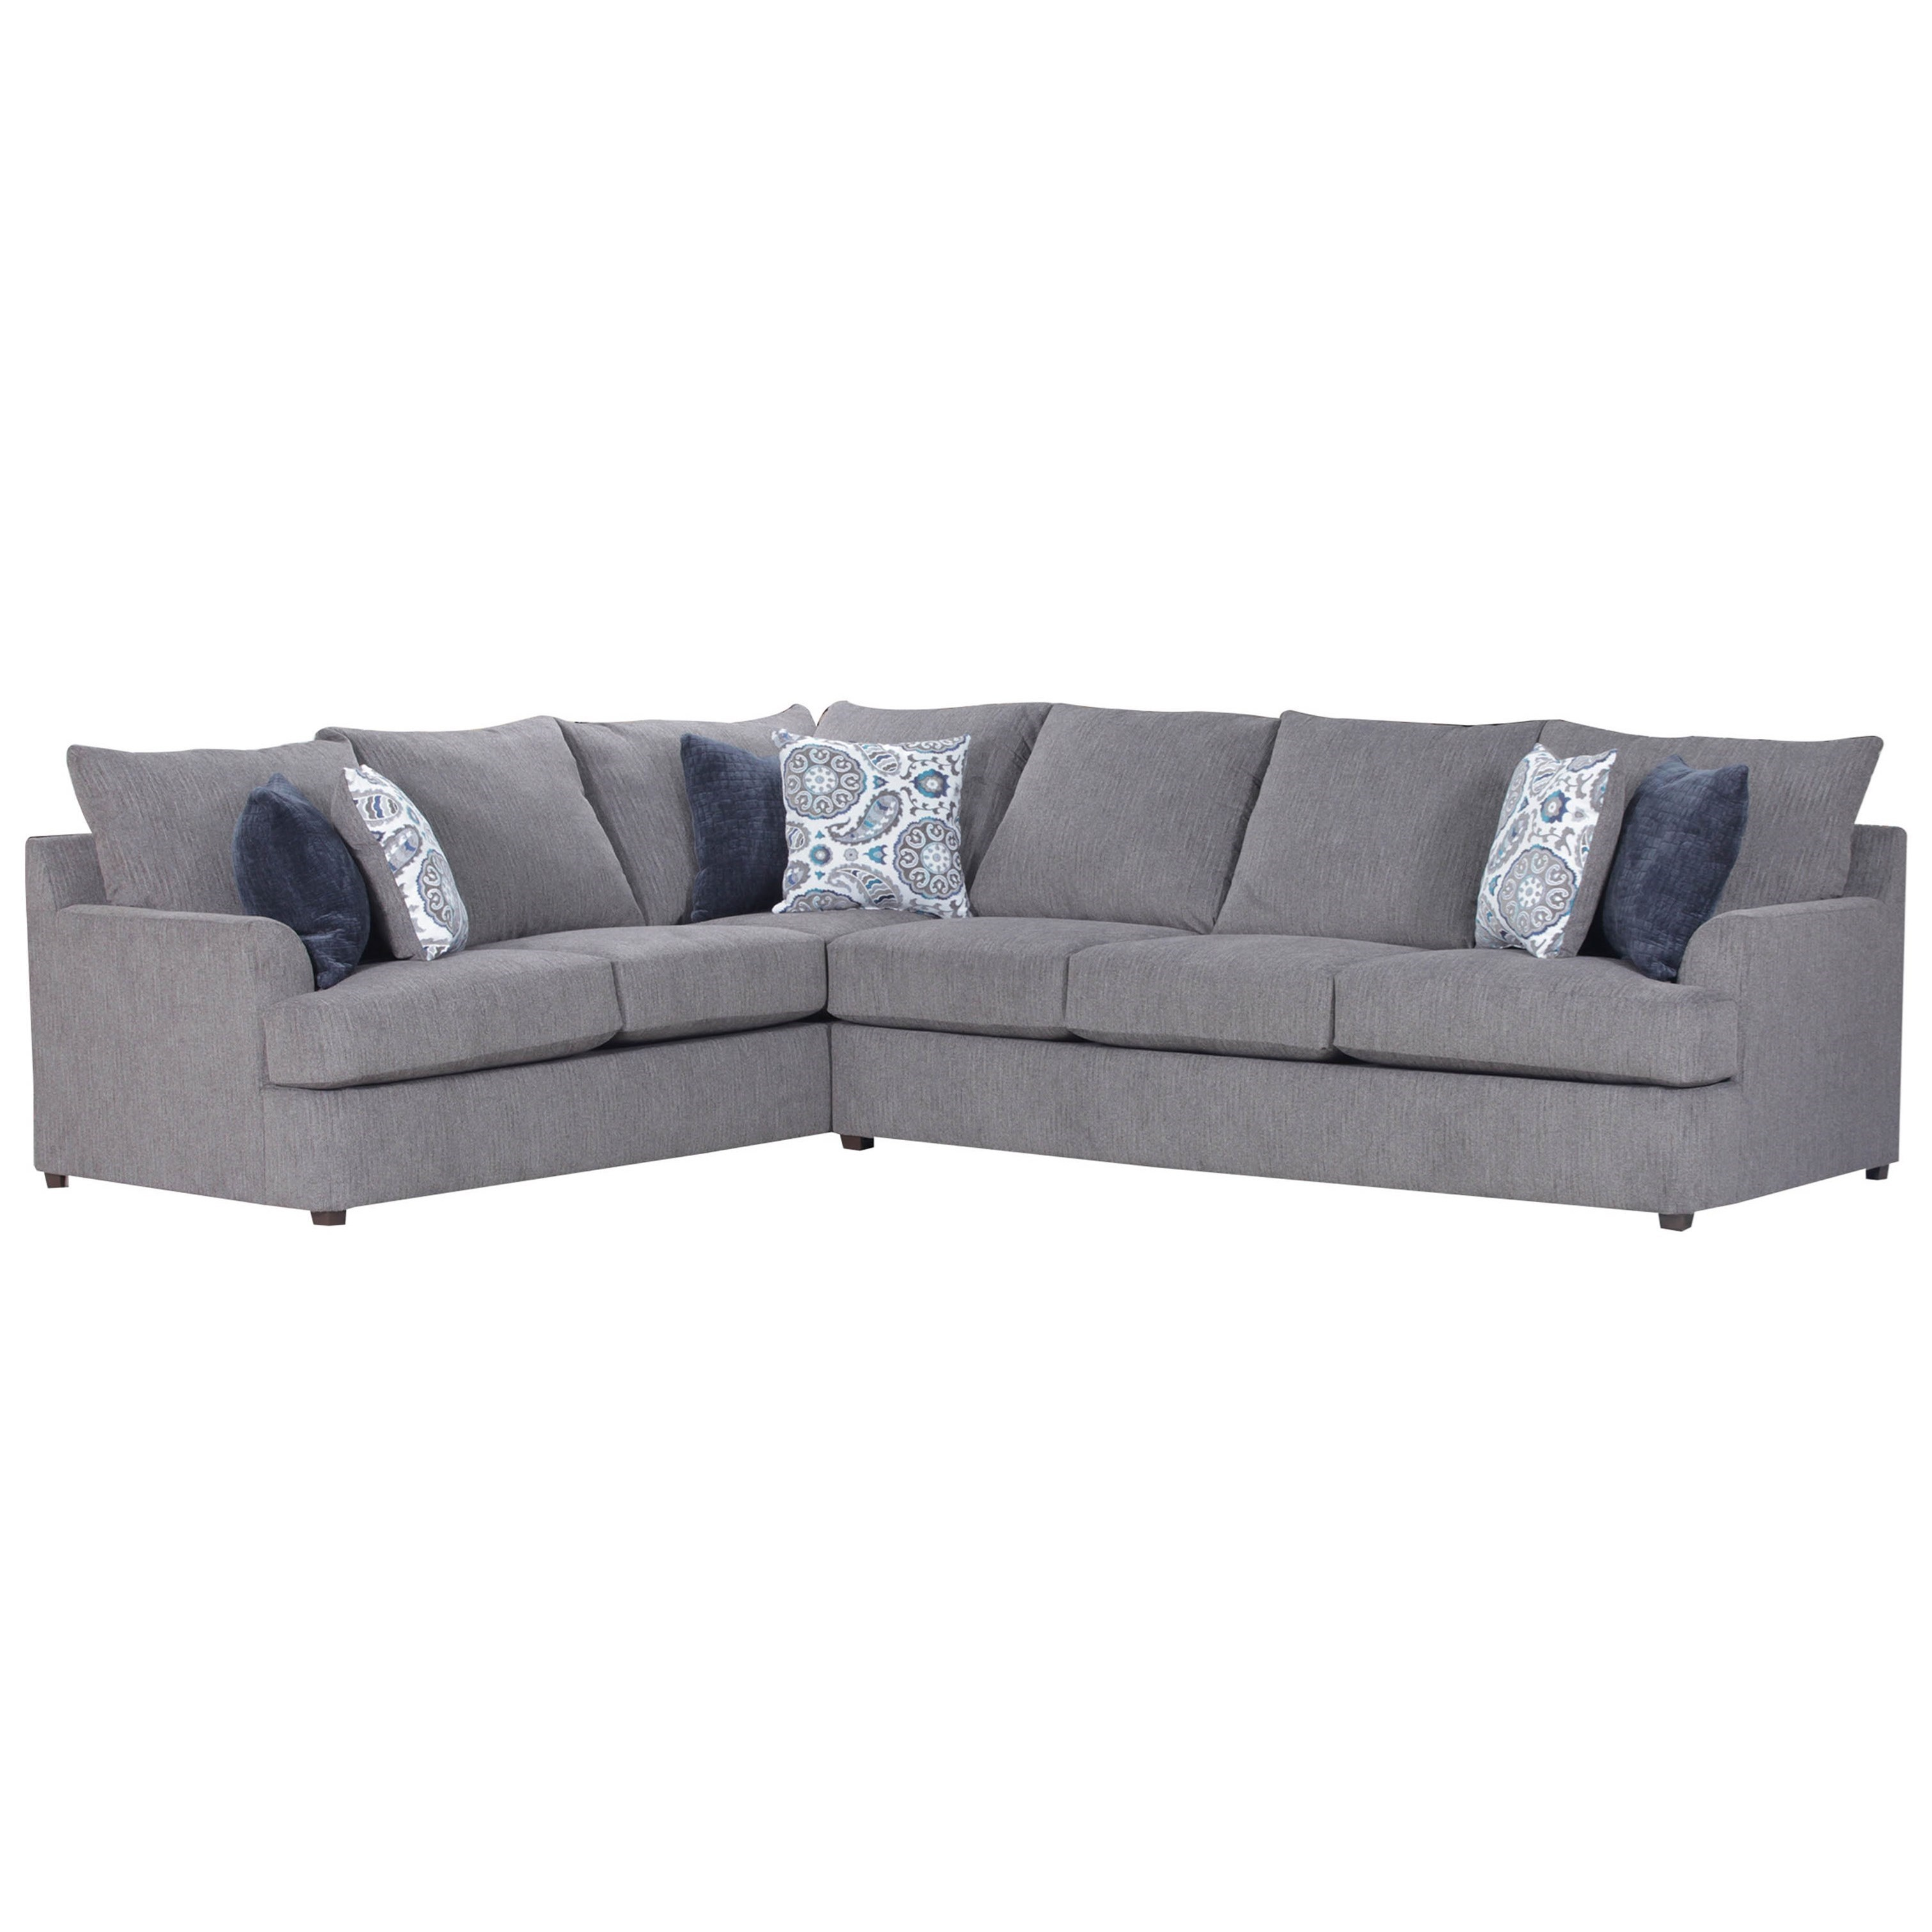 8540BR Casual Sectional Sofa by United Furniture Industries at Dream Home Interiors